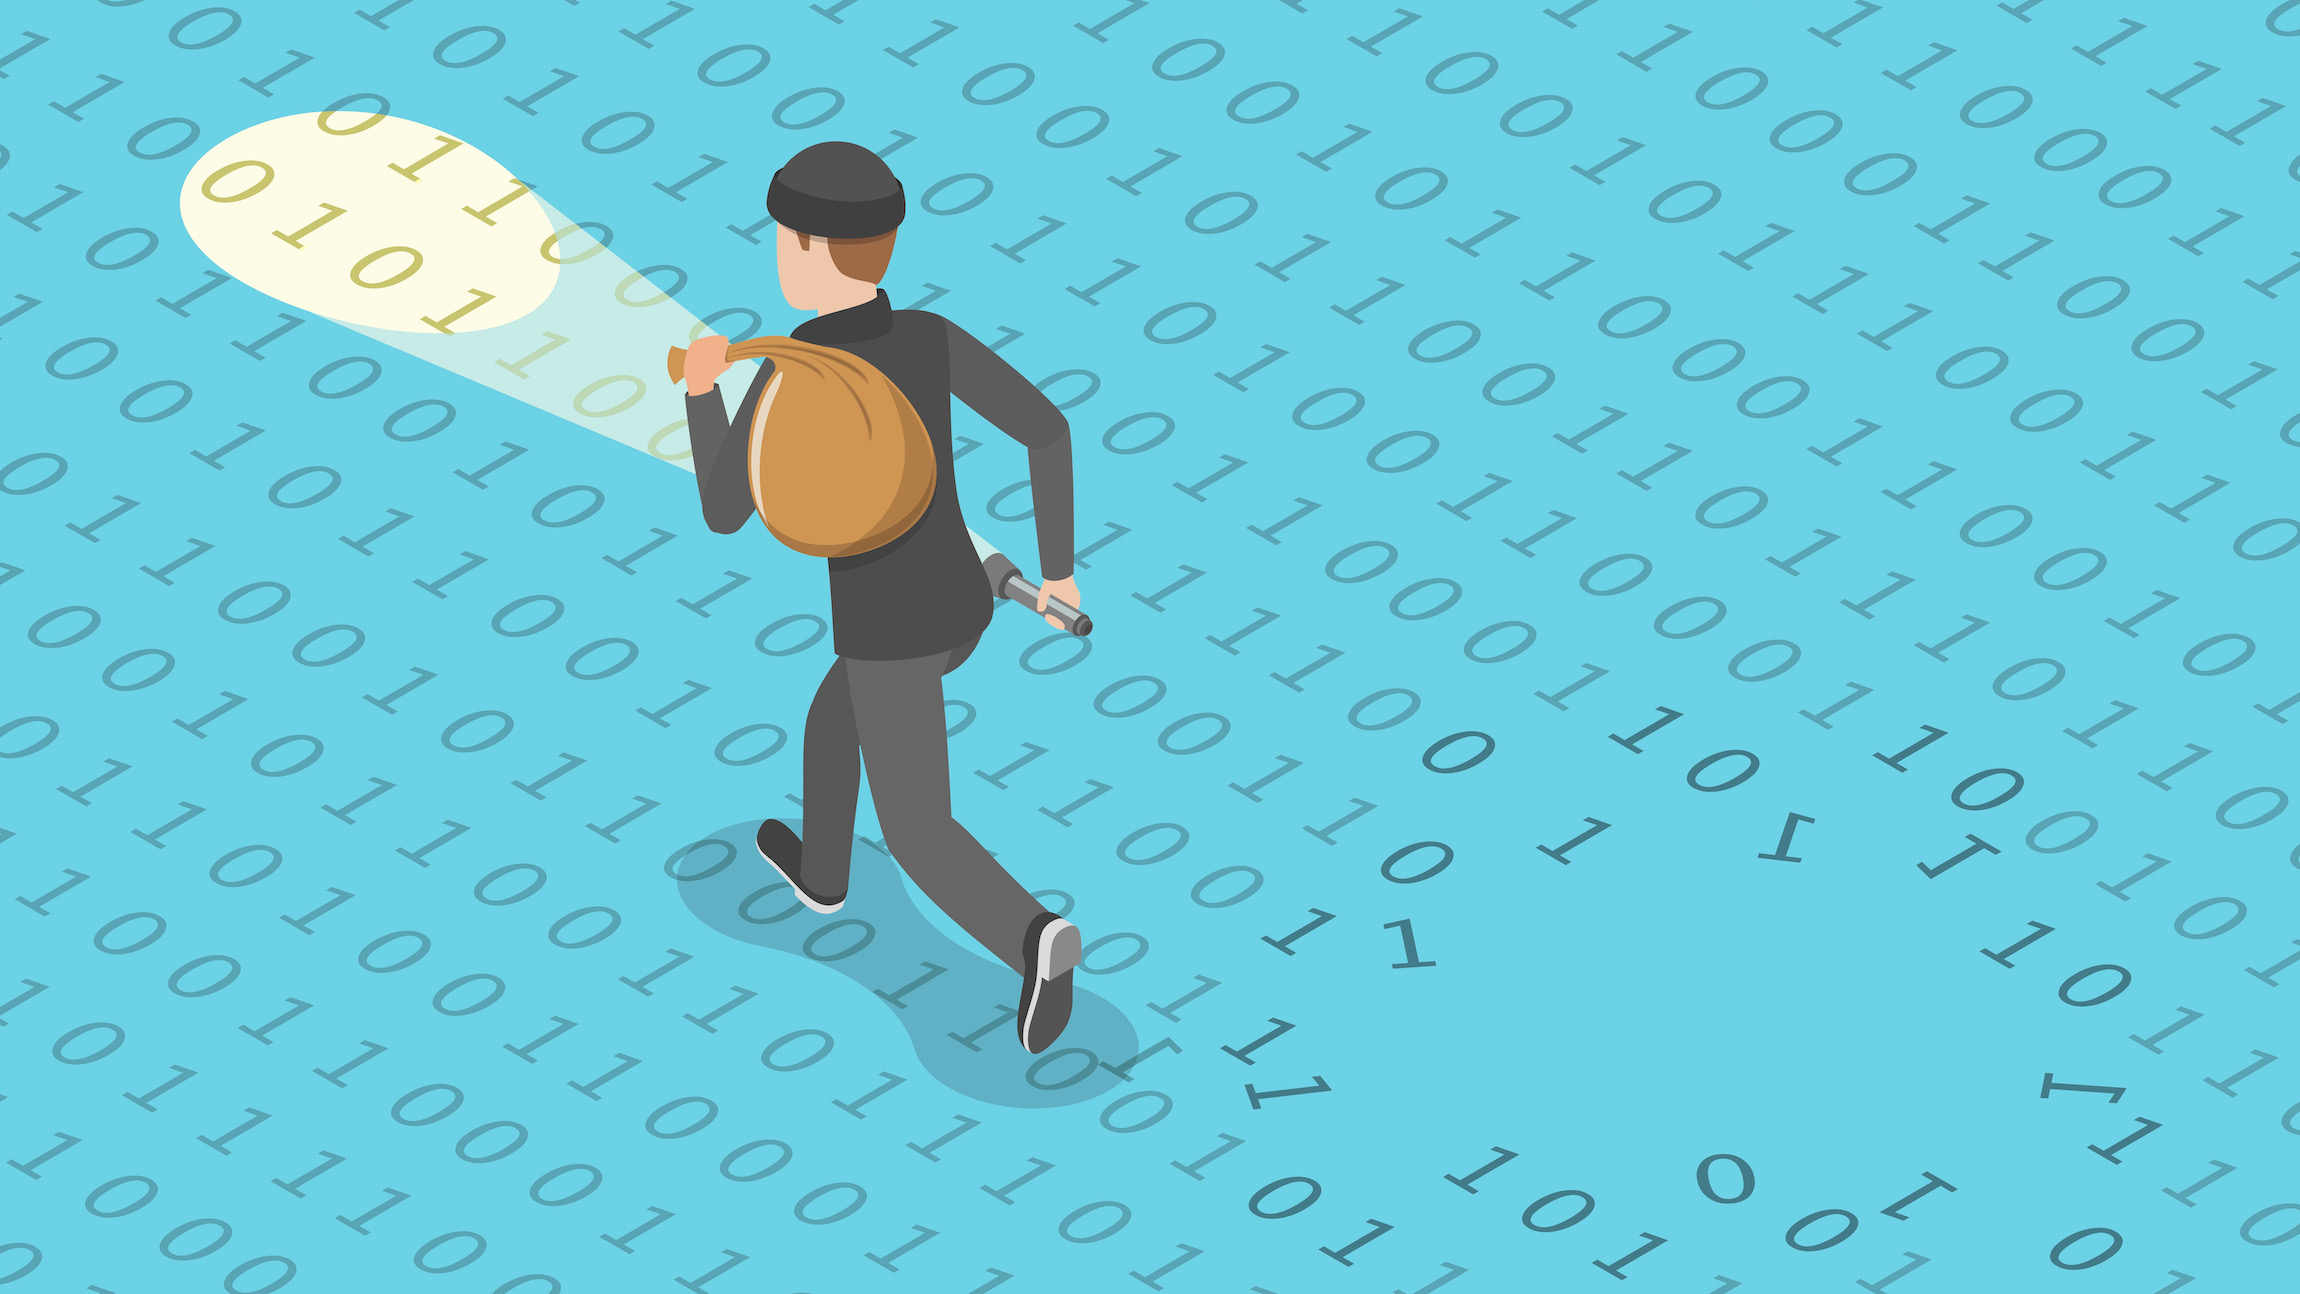 A illustration of a man in a burglar outfit running across 1s and 0s to illustrate data theft during a ransomware attack.